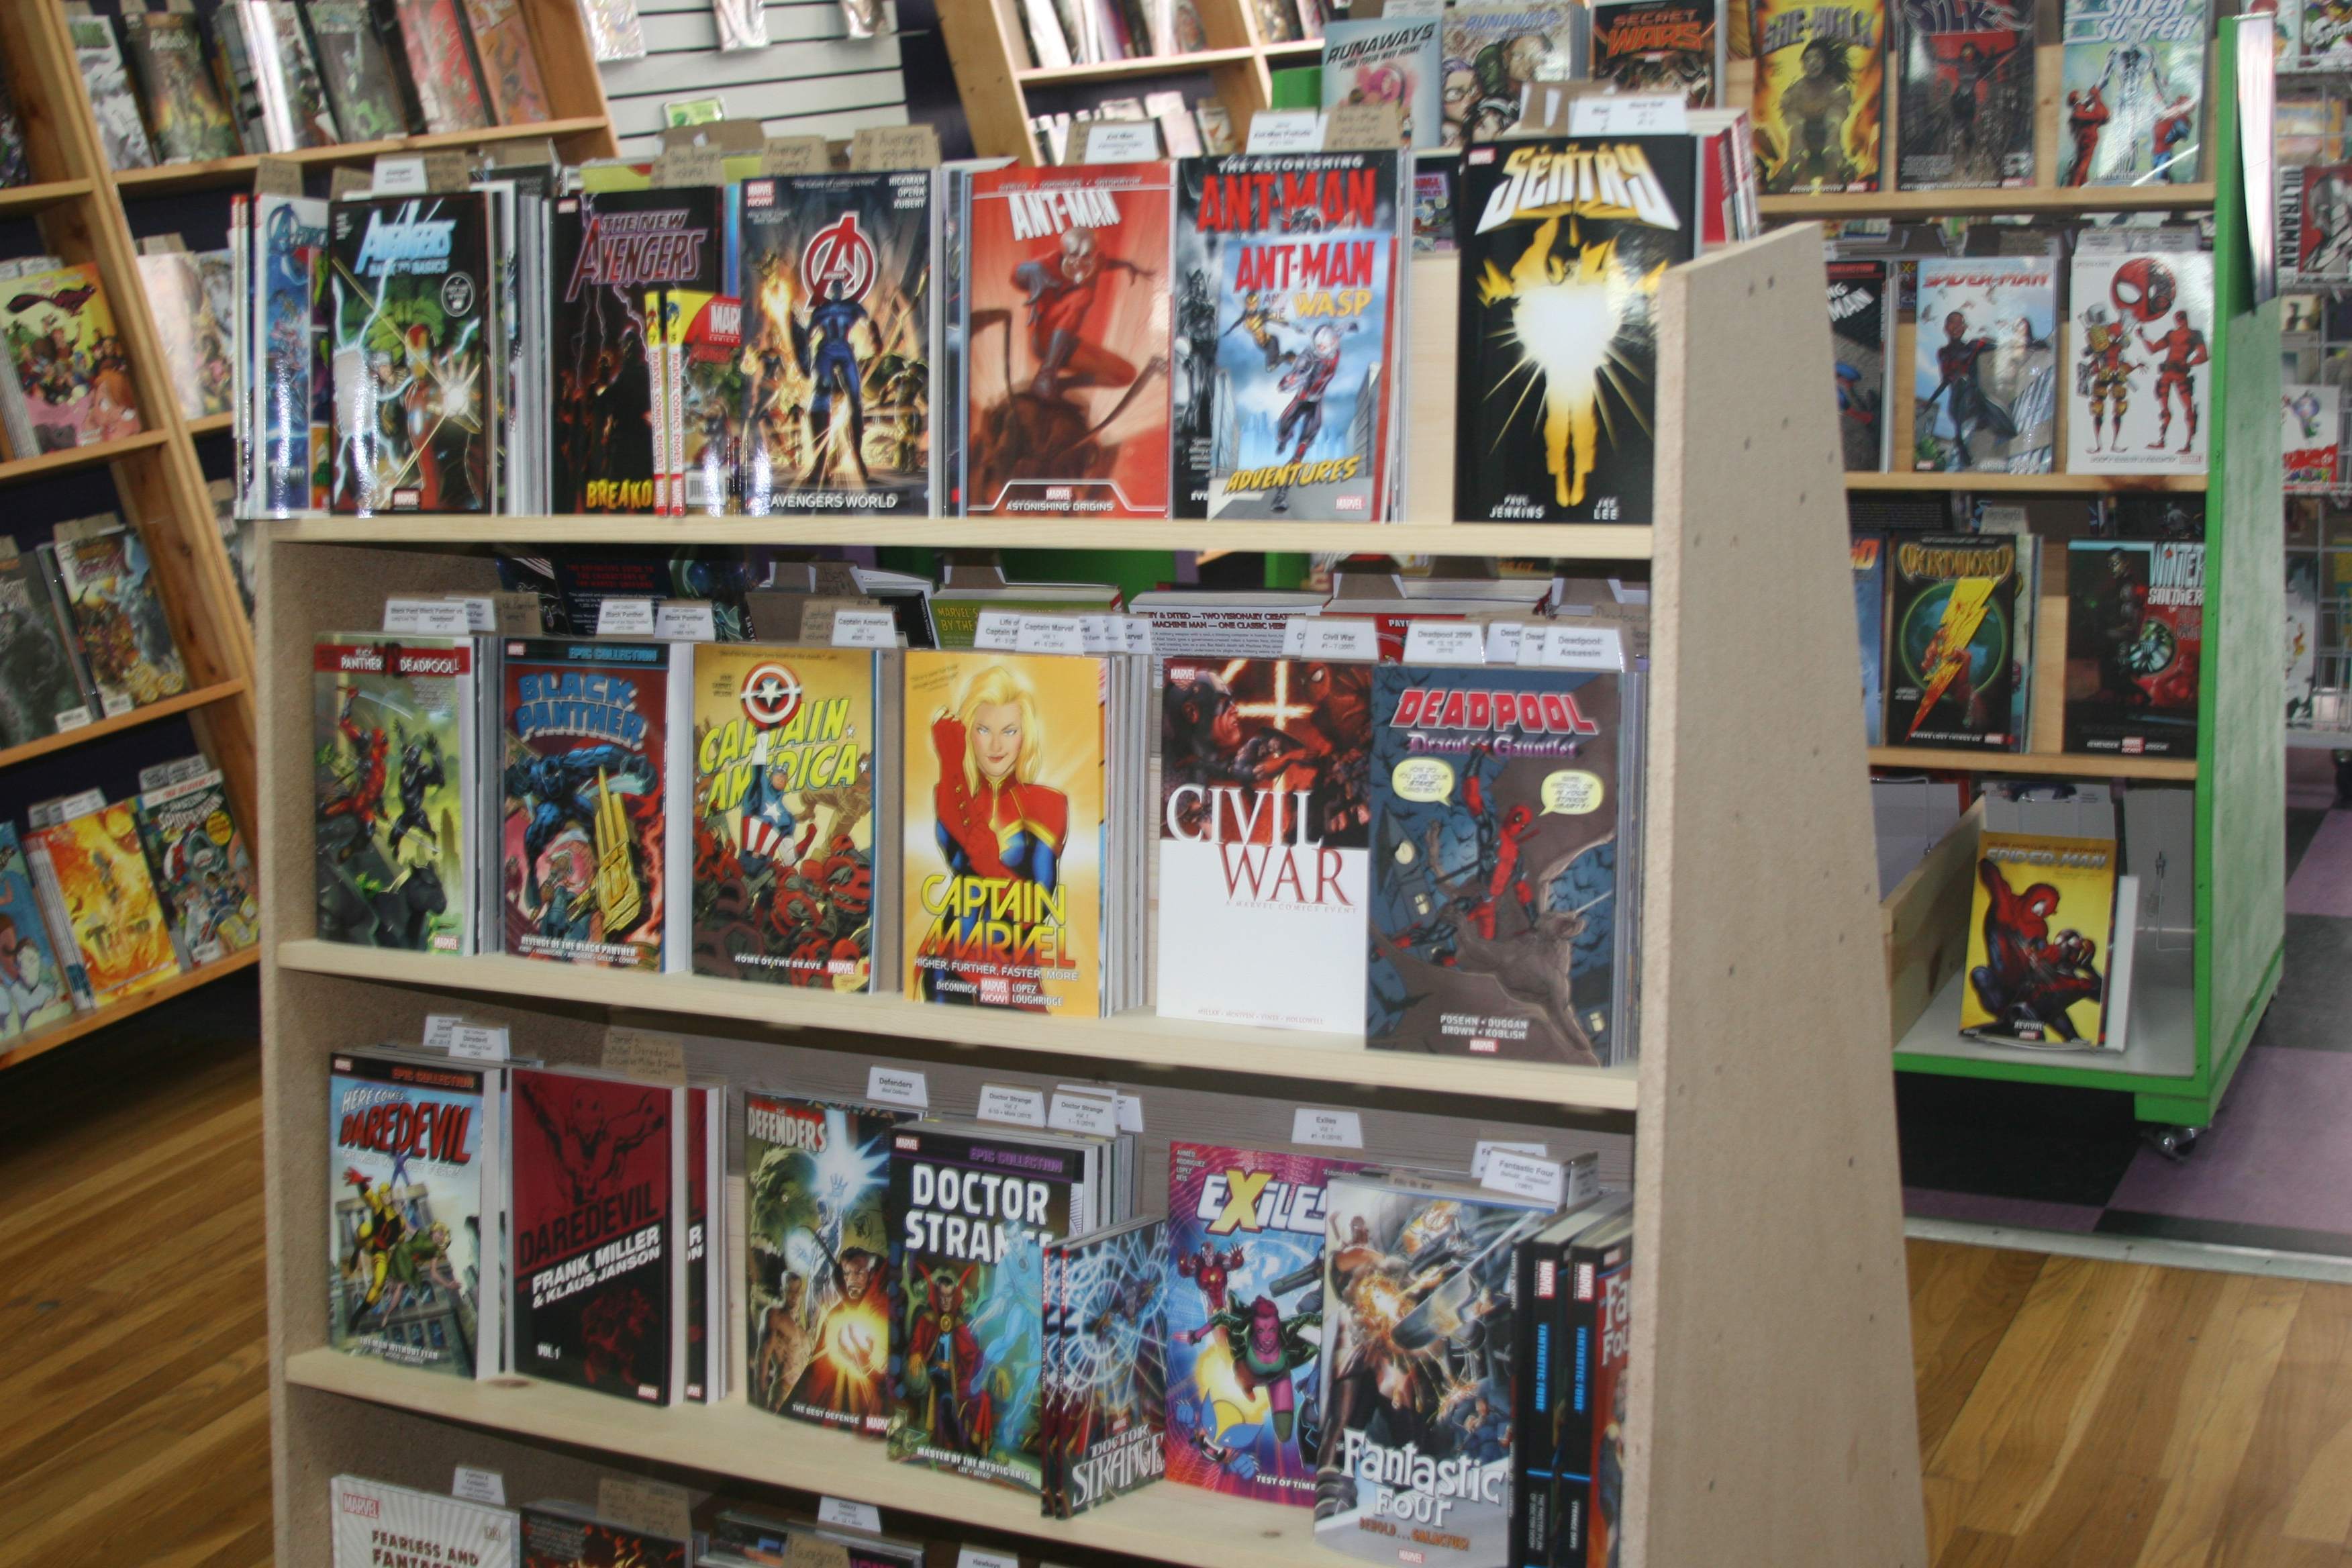 One of the display shelves at Green Brain Comics.